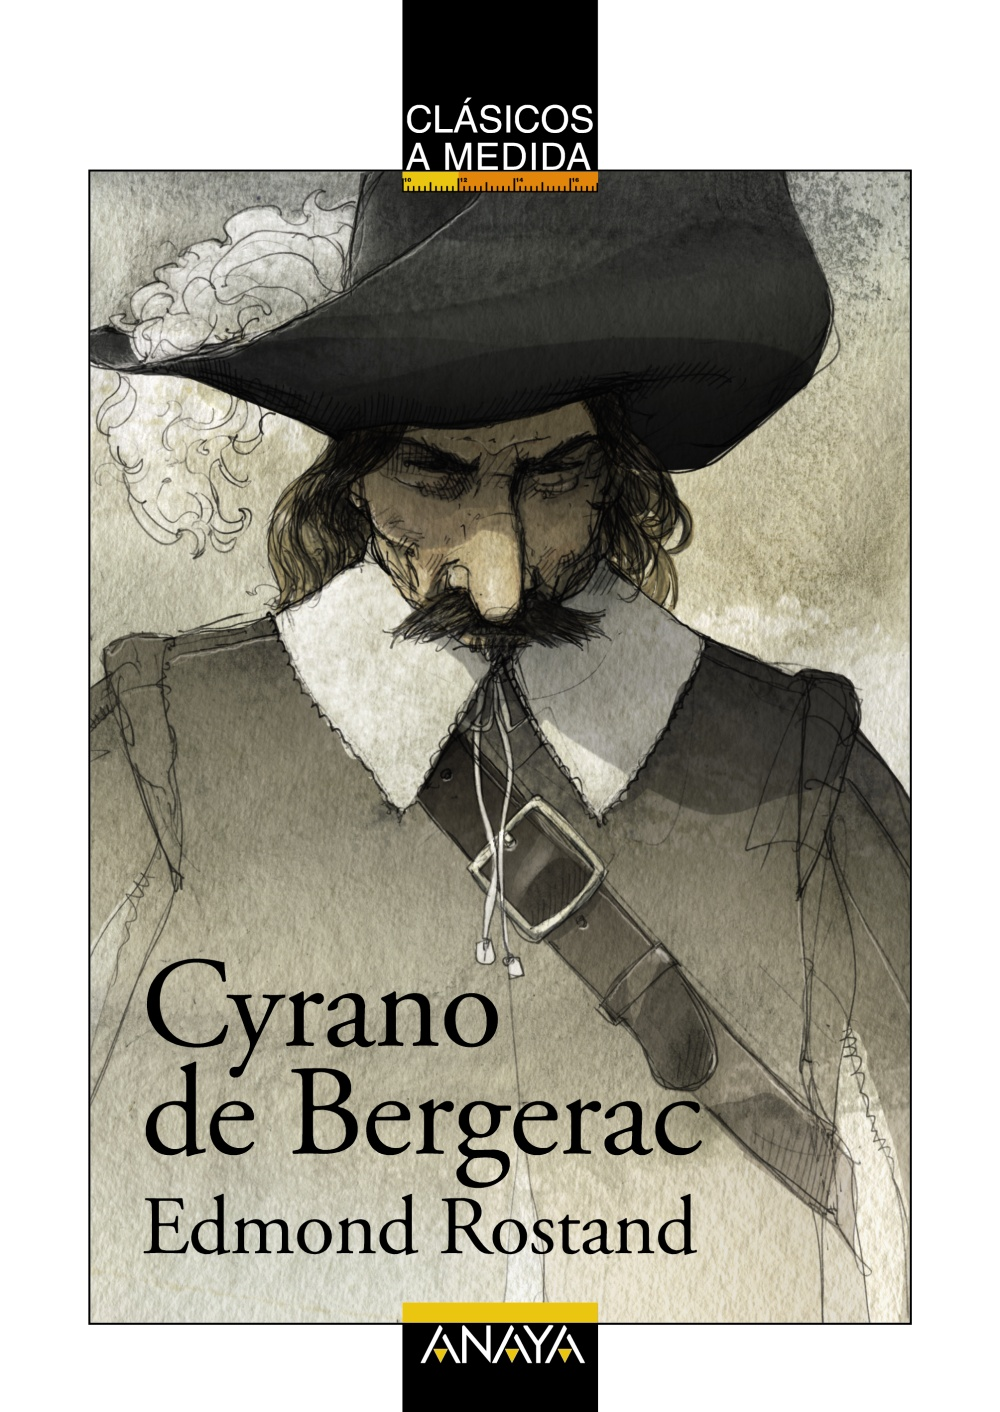 an analysis of cyrano de bergerac by edmond rostand Cyrano de bergerac by edmond rostand — a literary and philosophical  analysis level intermediate average rating save lesson ayn rand once  said that.